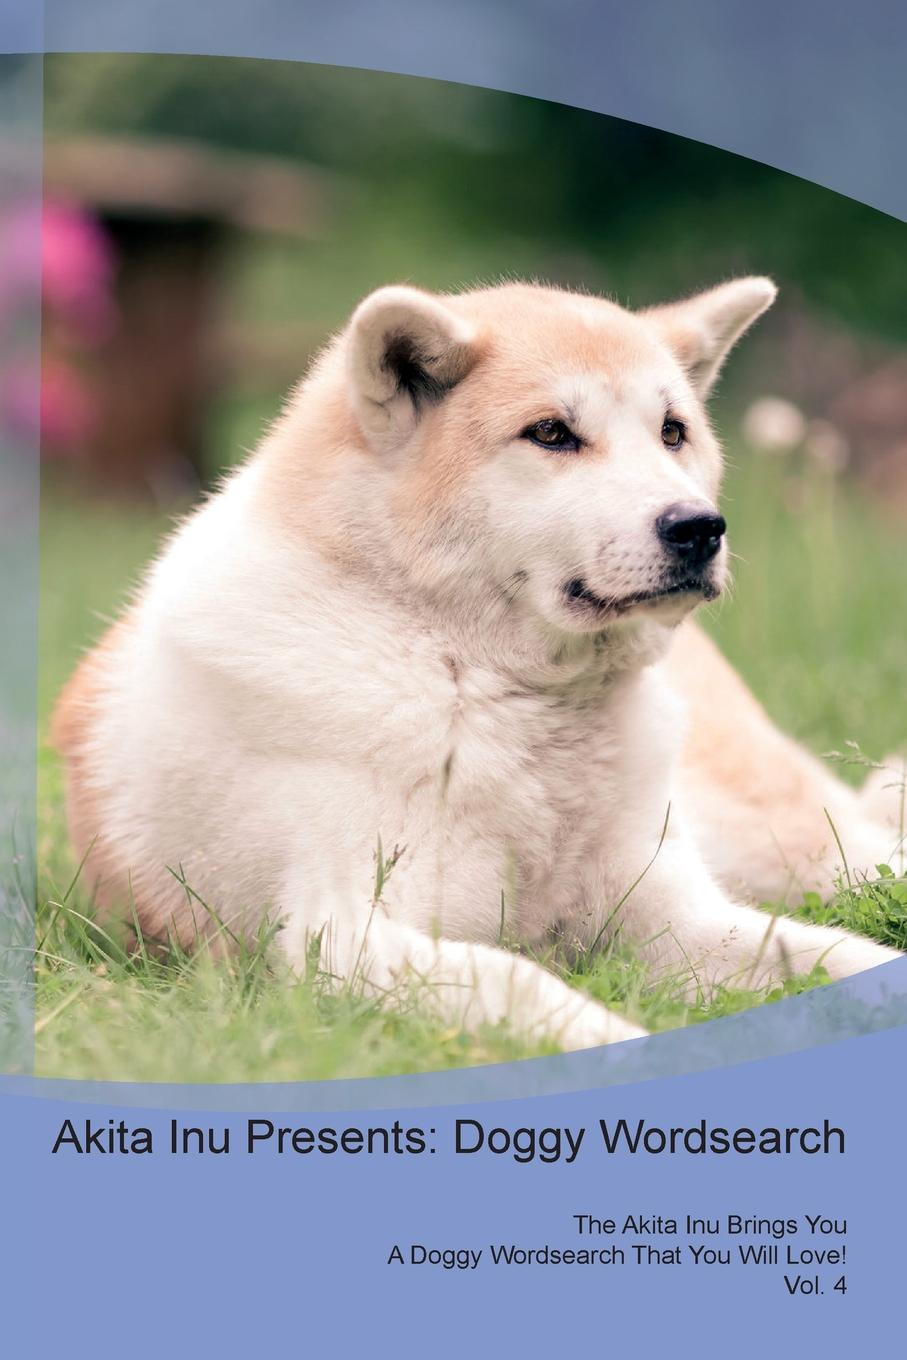 Doggy Puzzles Akita Inu Presents. Wordsearch The Brings You A That Will Love! Vol. 4